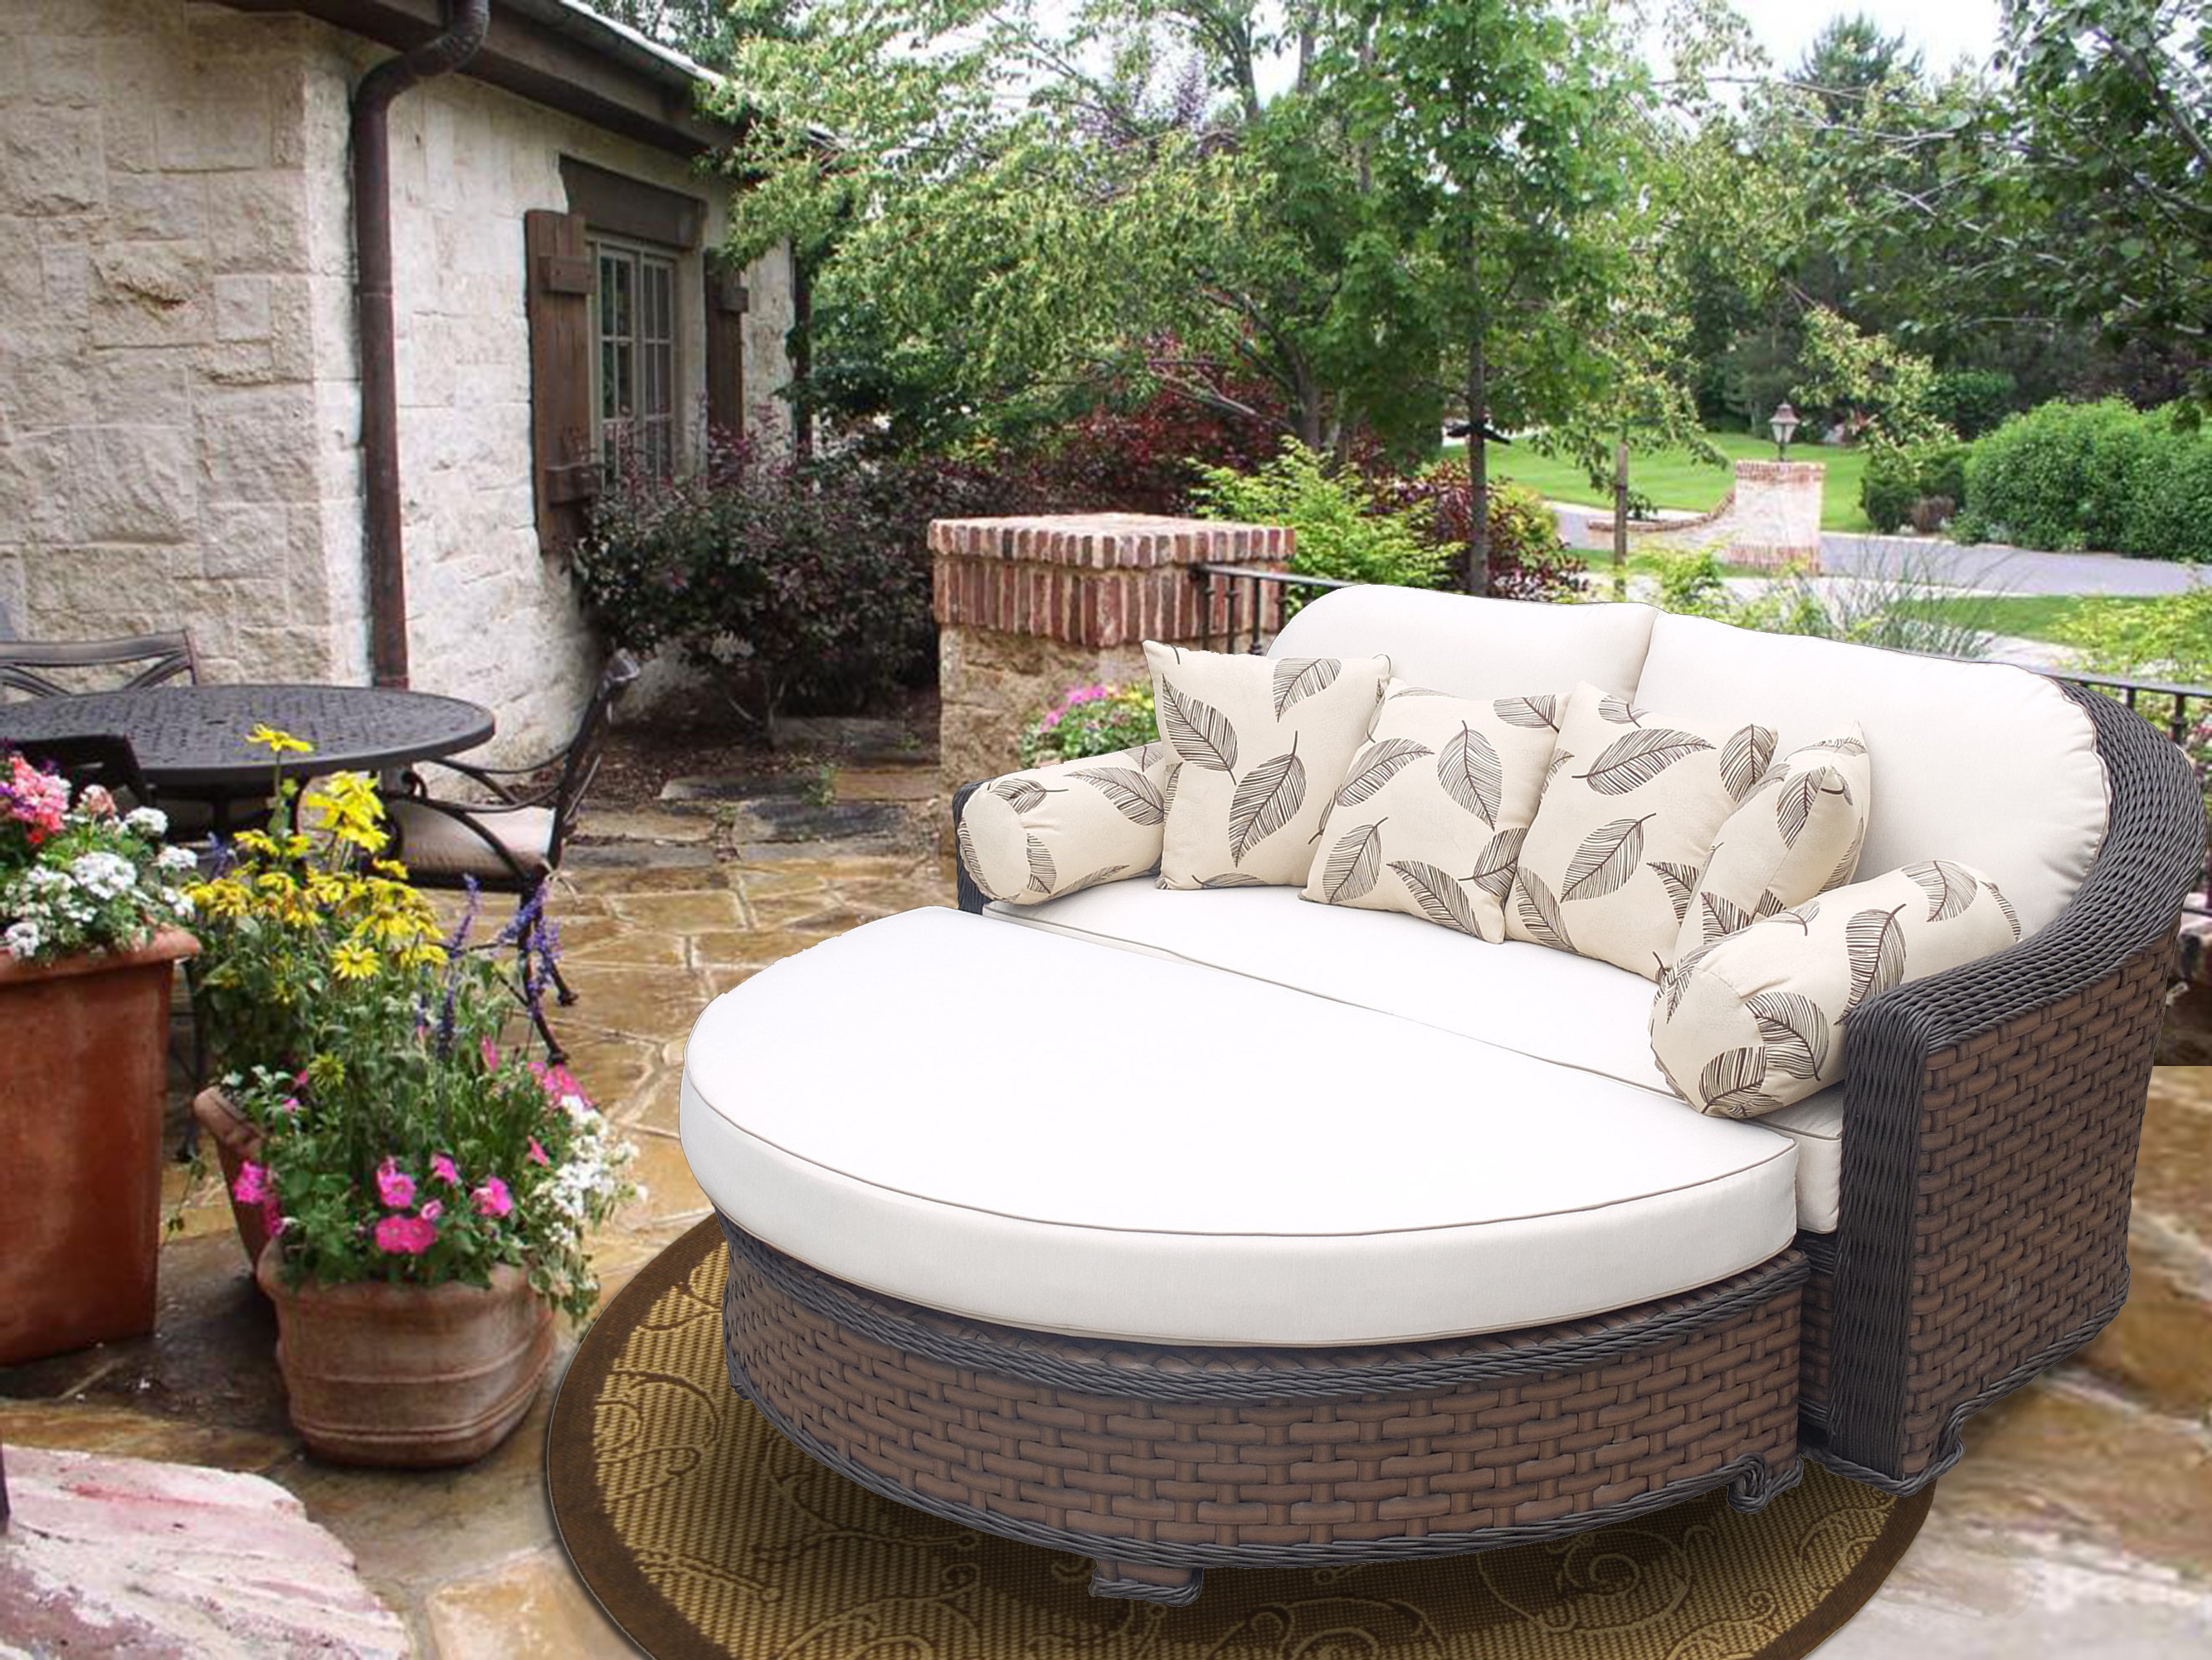 Preferred Gaia Premium Daybed With Cushions In Greening Outdoor Daybeds With Ottoman & Cushions (View 13 of 20)